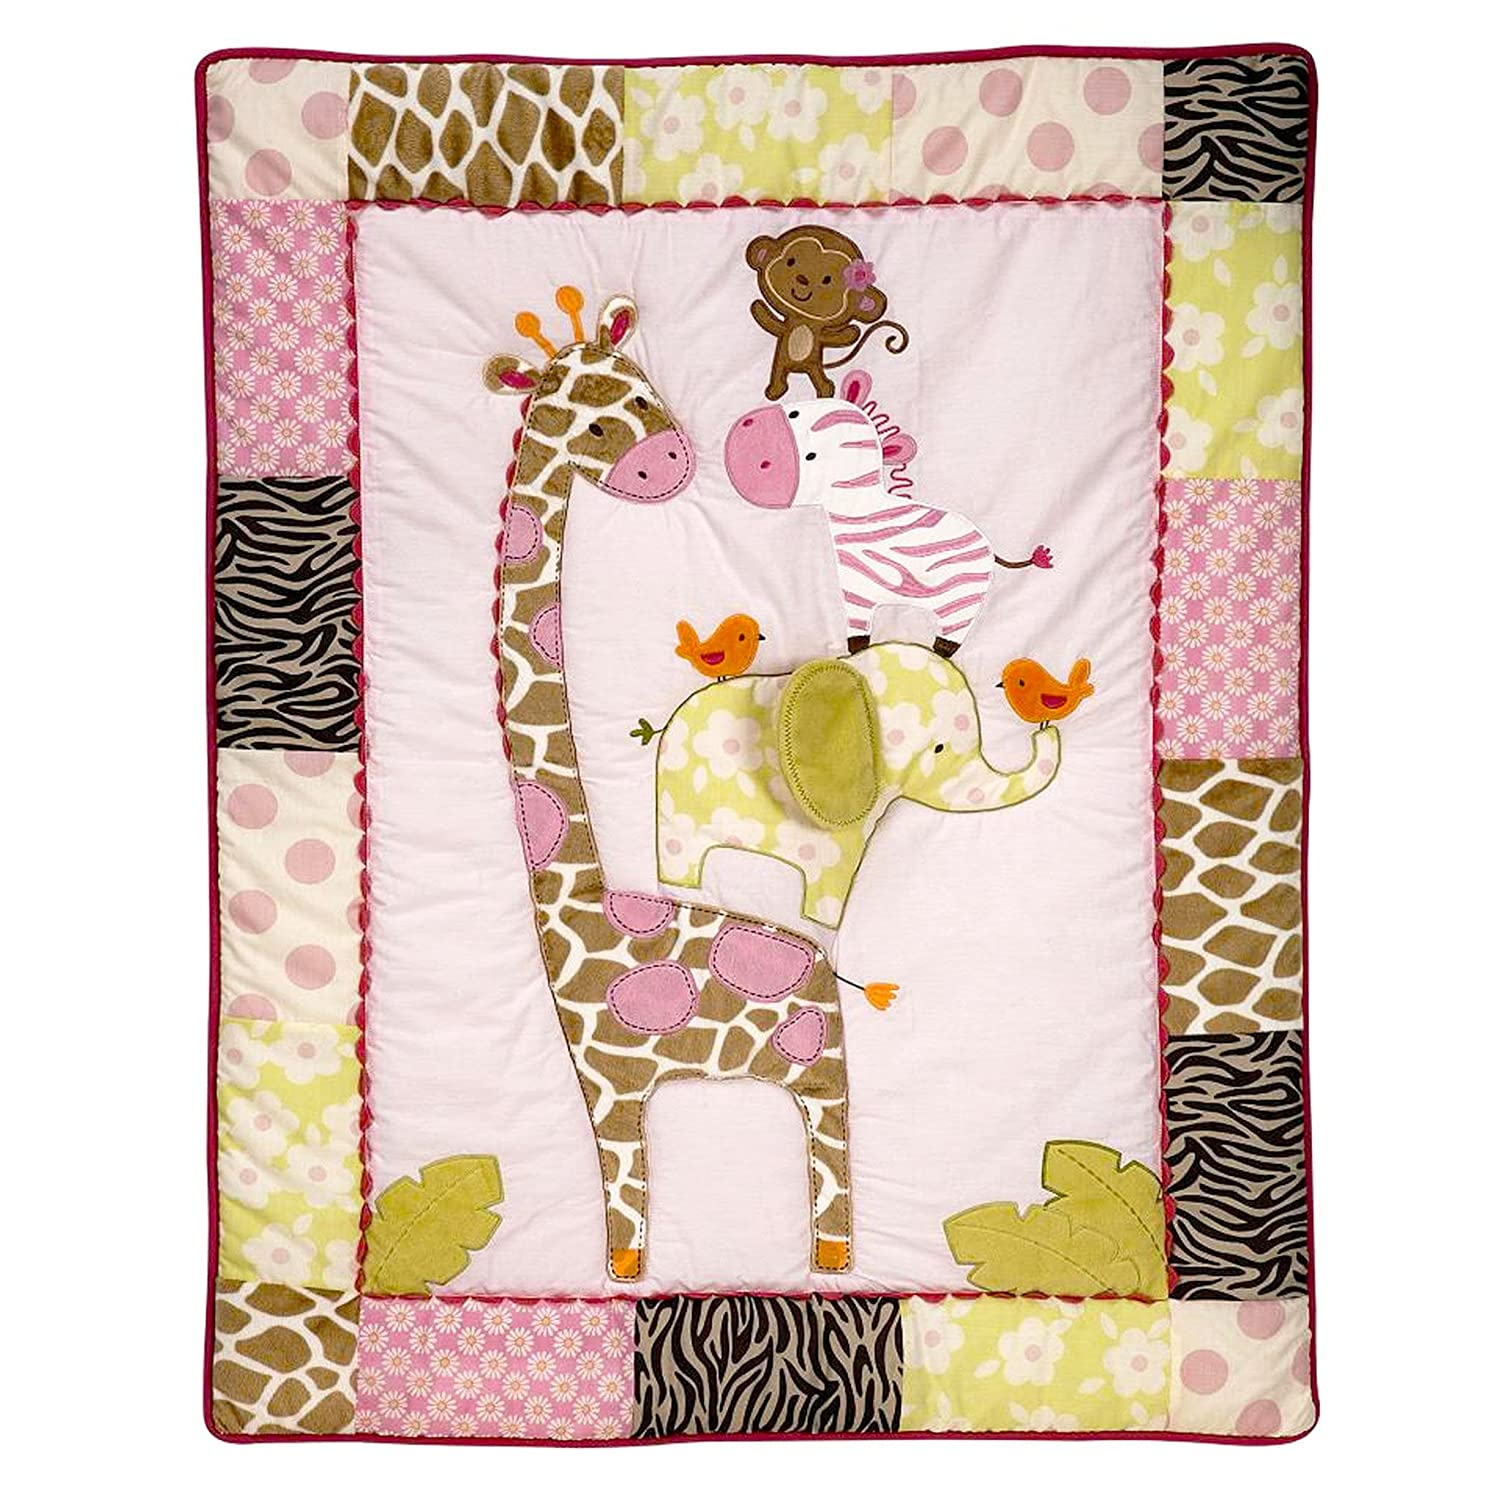 Carters Jungle Jill Baby Applique Luxury Pink Crib Quilt//Comforter Only